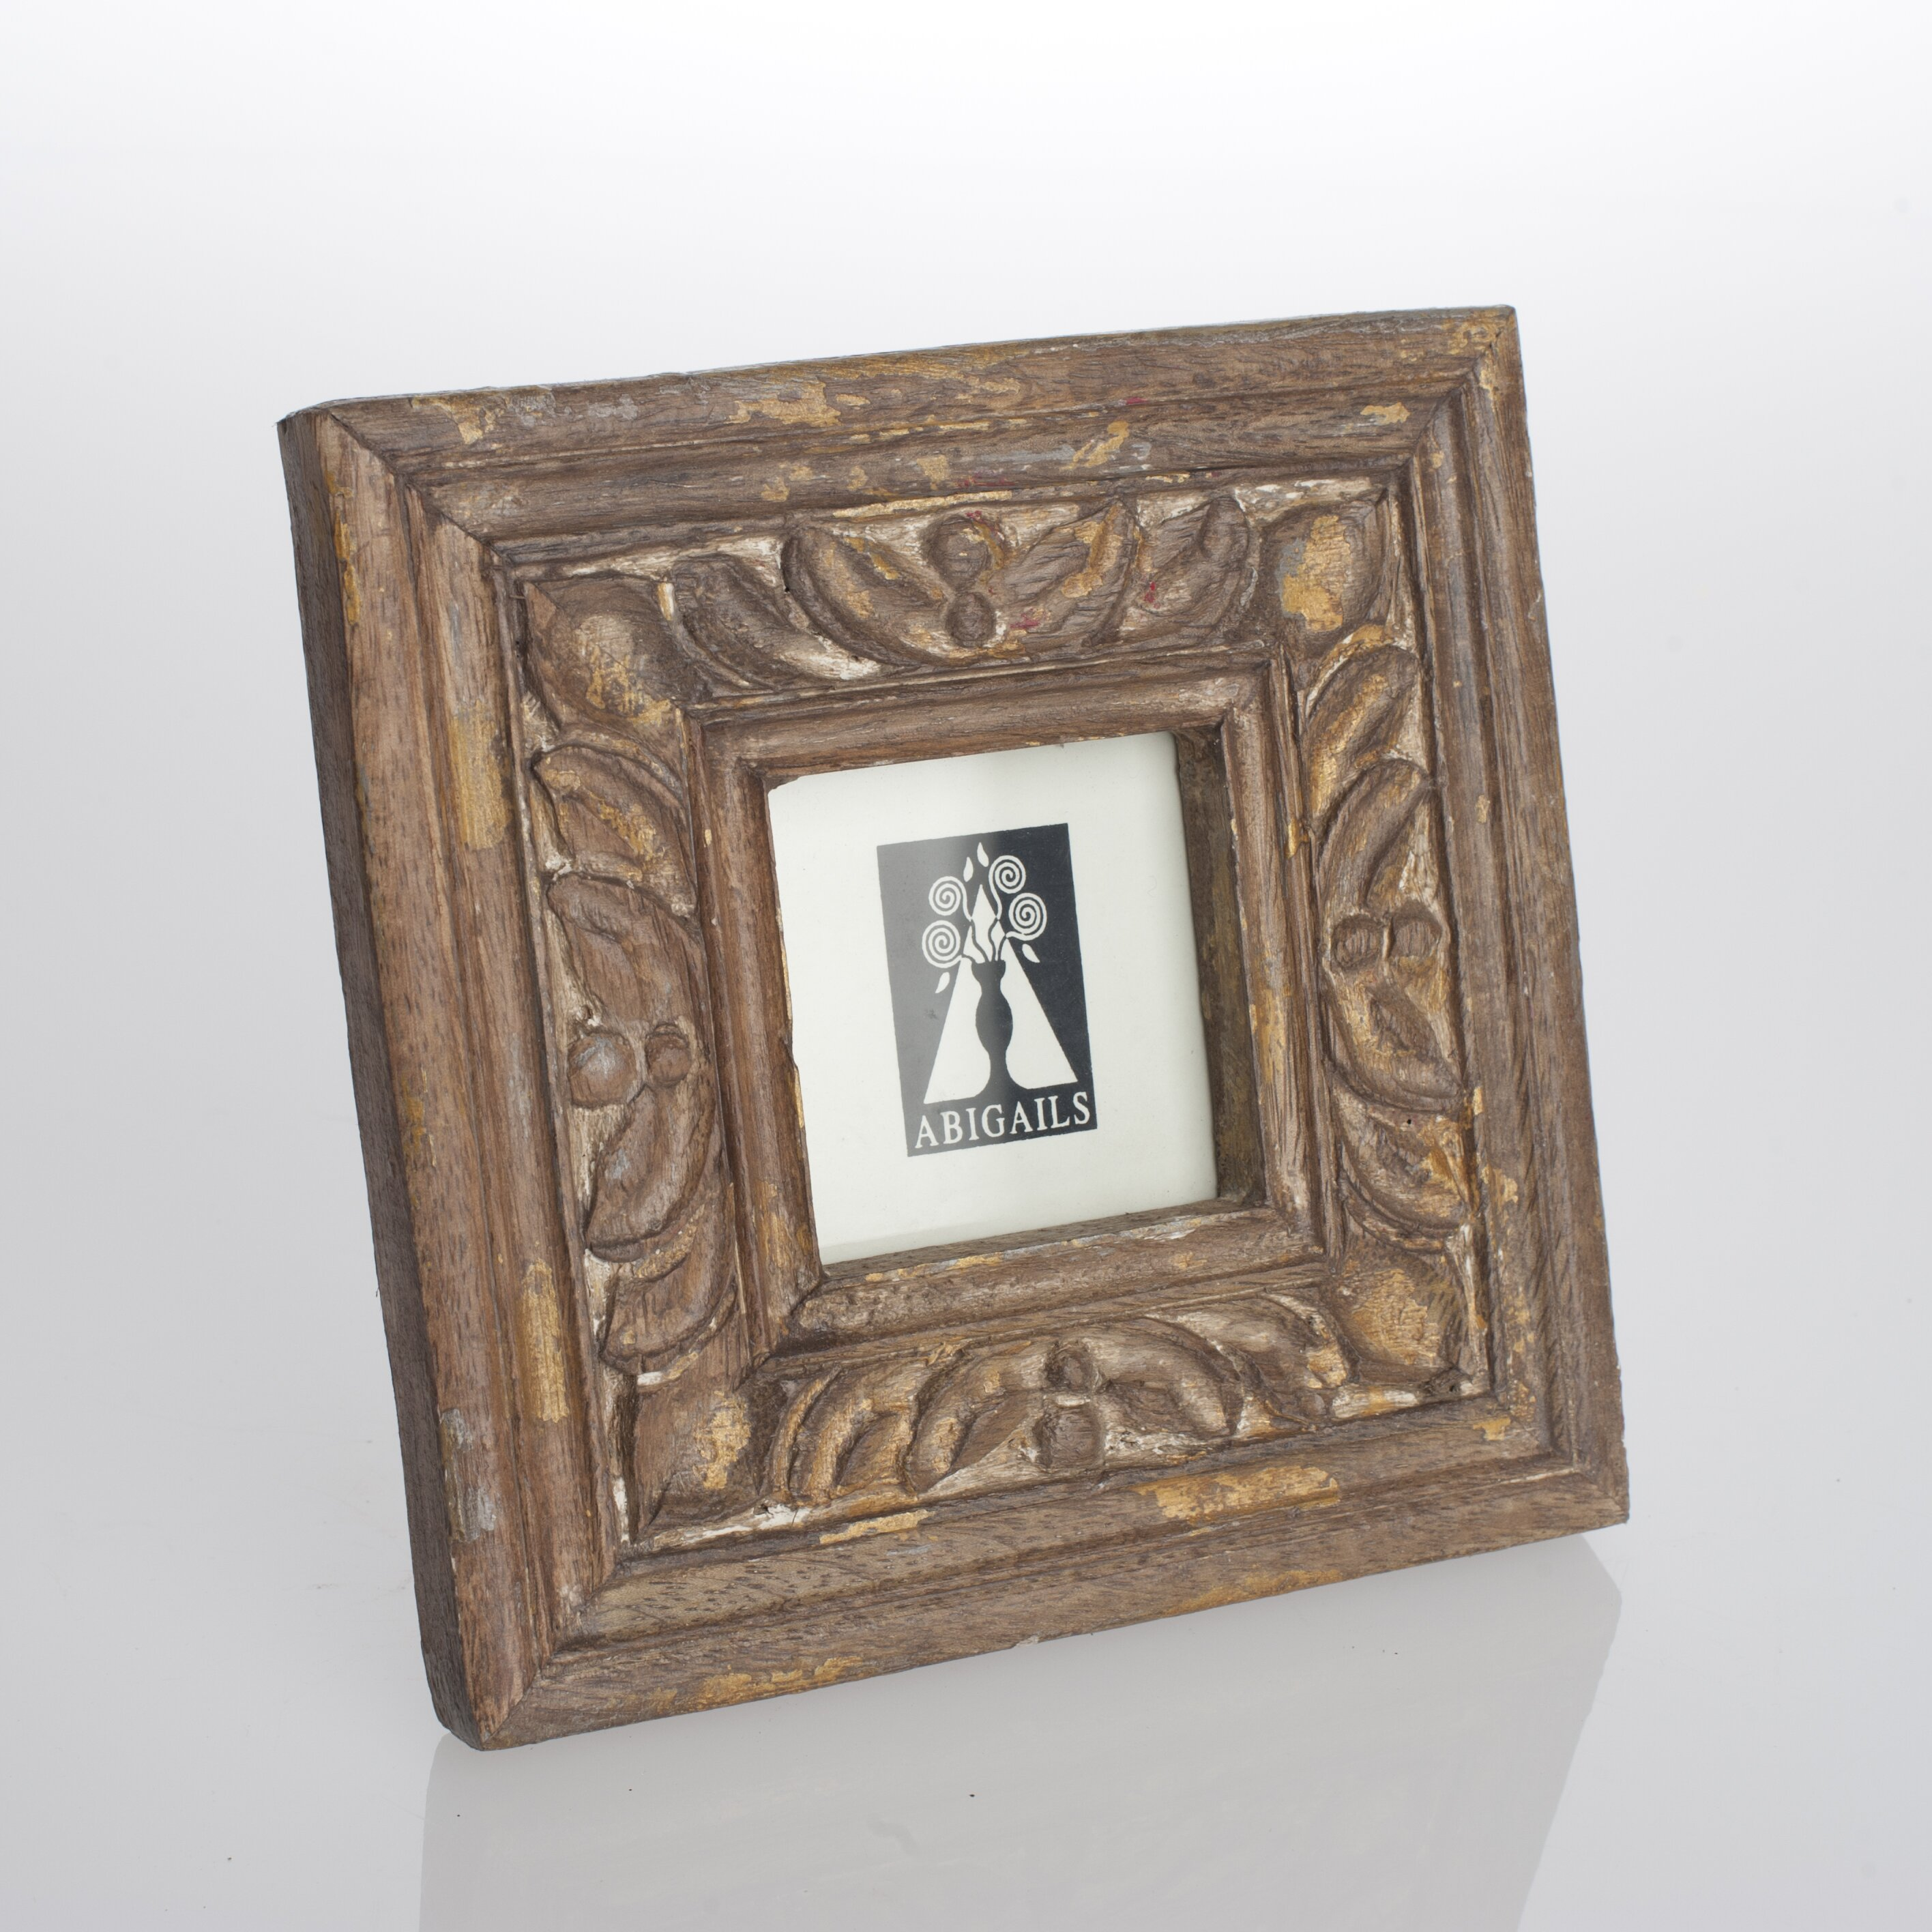 Abigails Provence Square Wood Picture Frame & Reviews ...